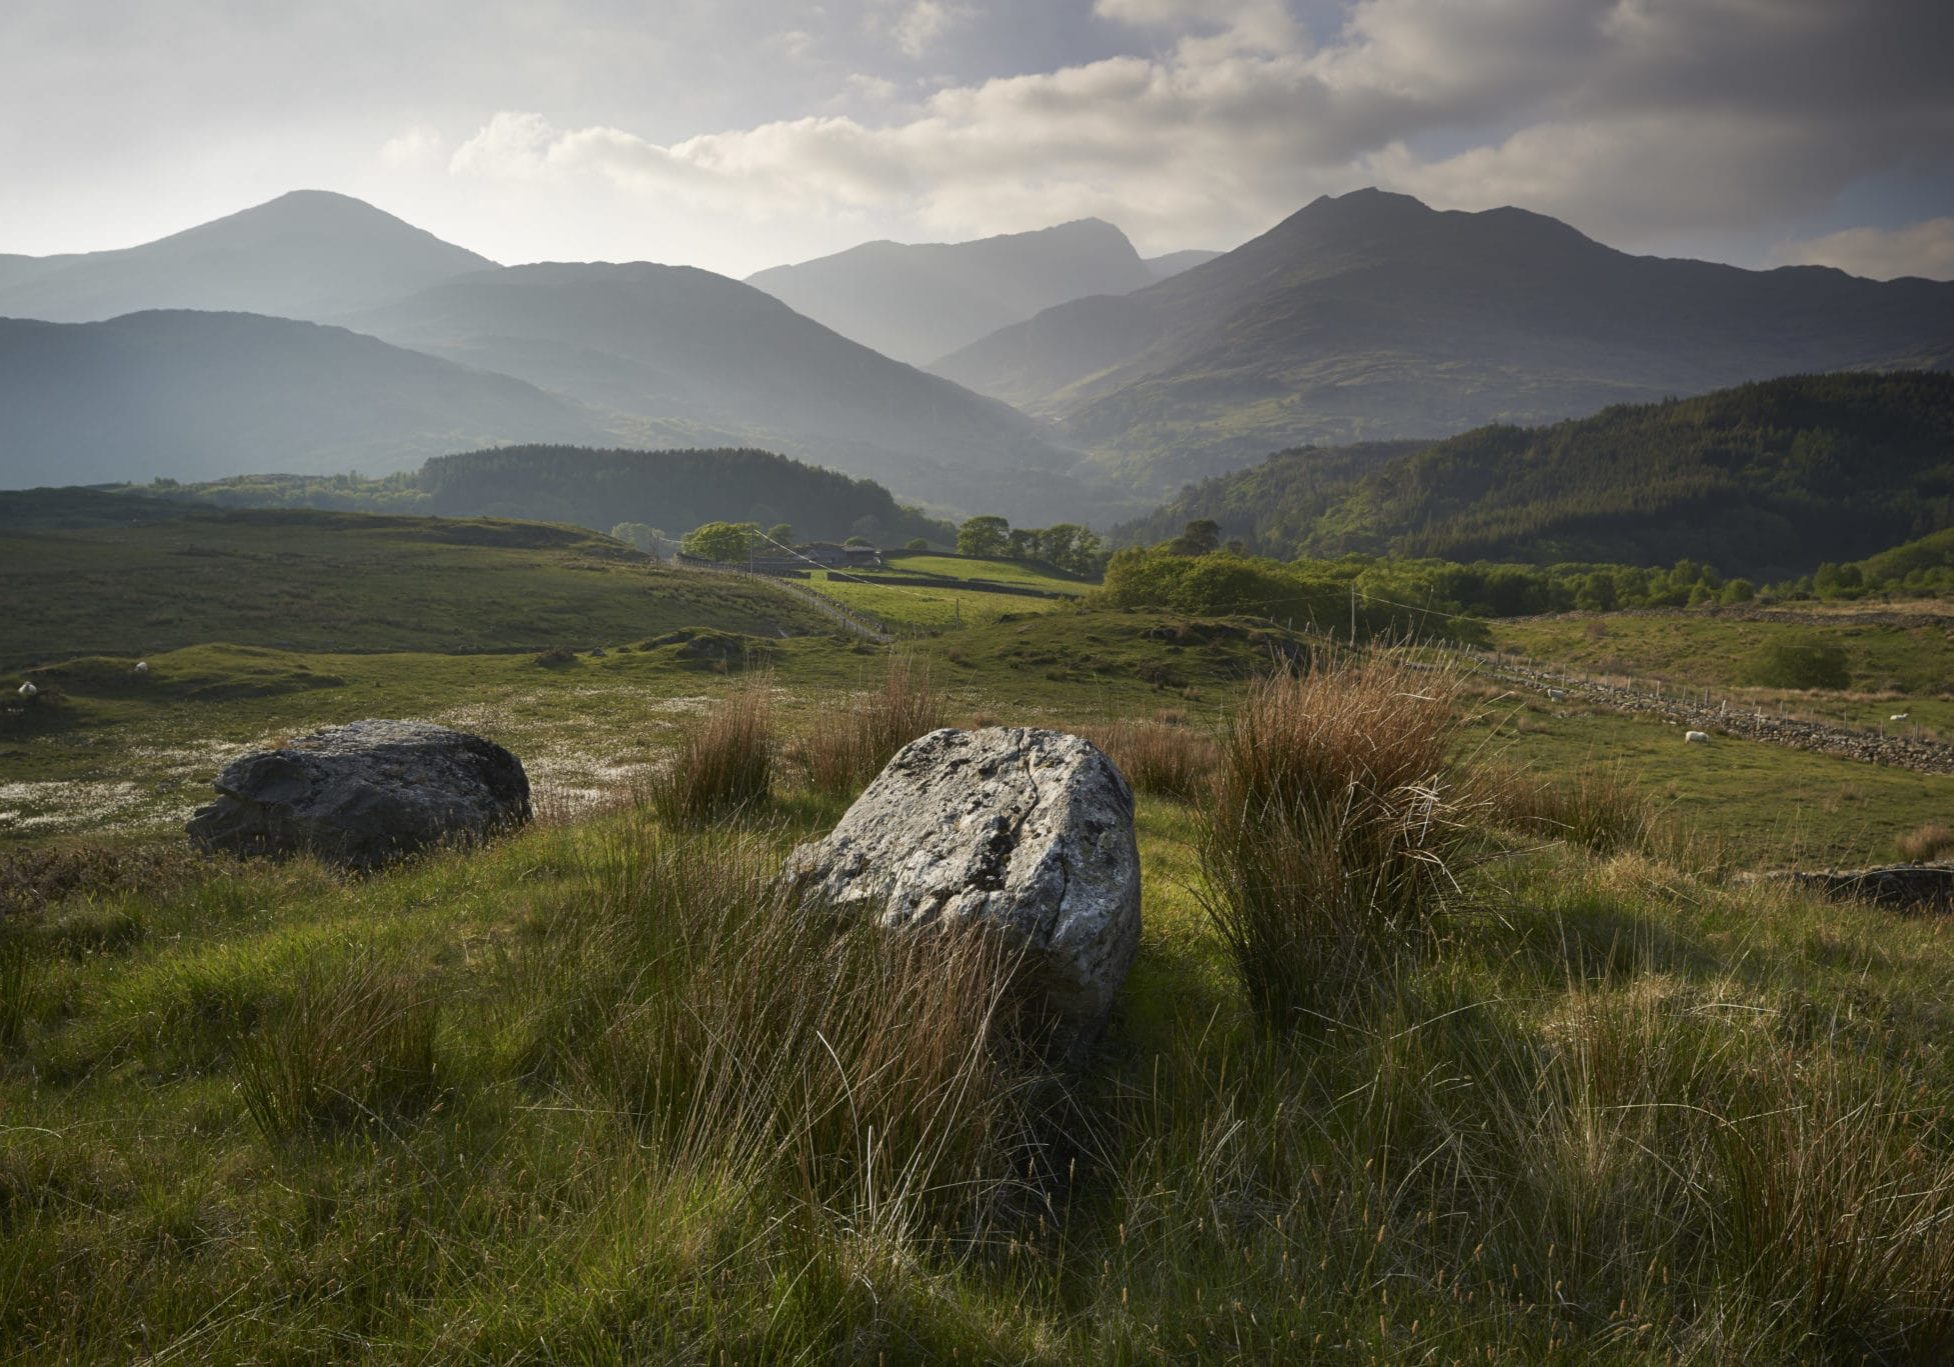 The Snowdonia peaks from the south with the National Trust's Hafod y Llan estate in the distance